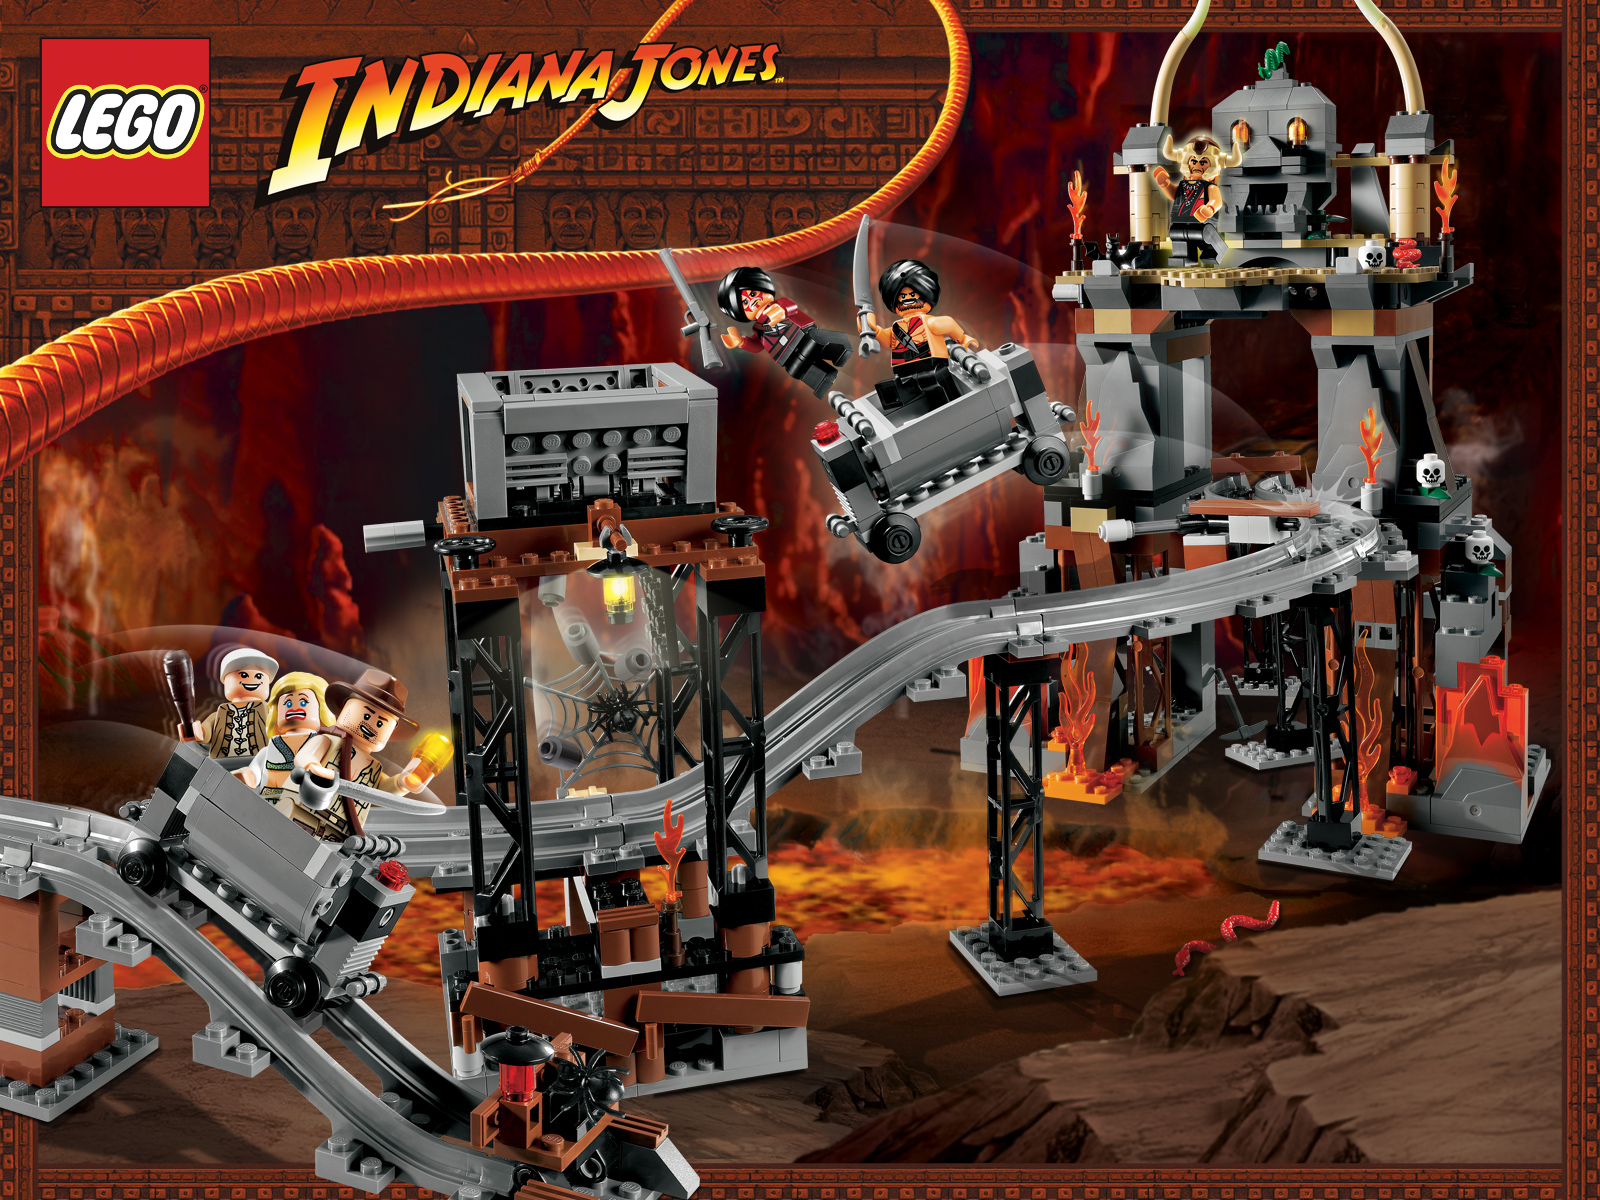 Lego Indiana Jones Pictures To Pin On Pinterest